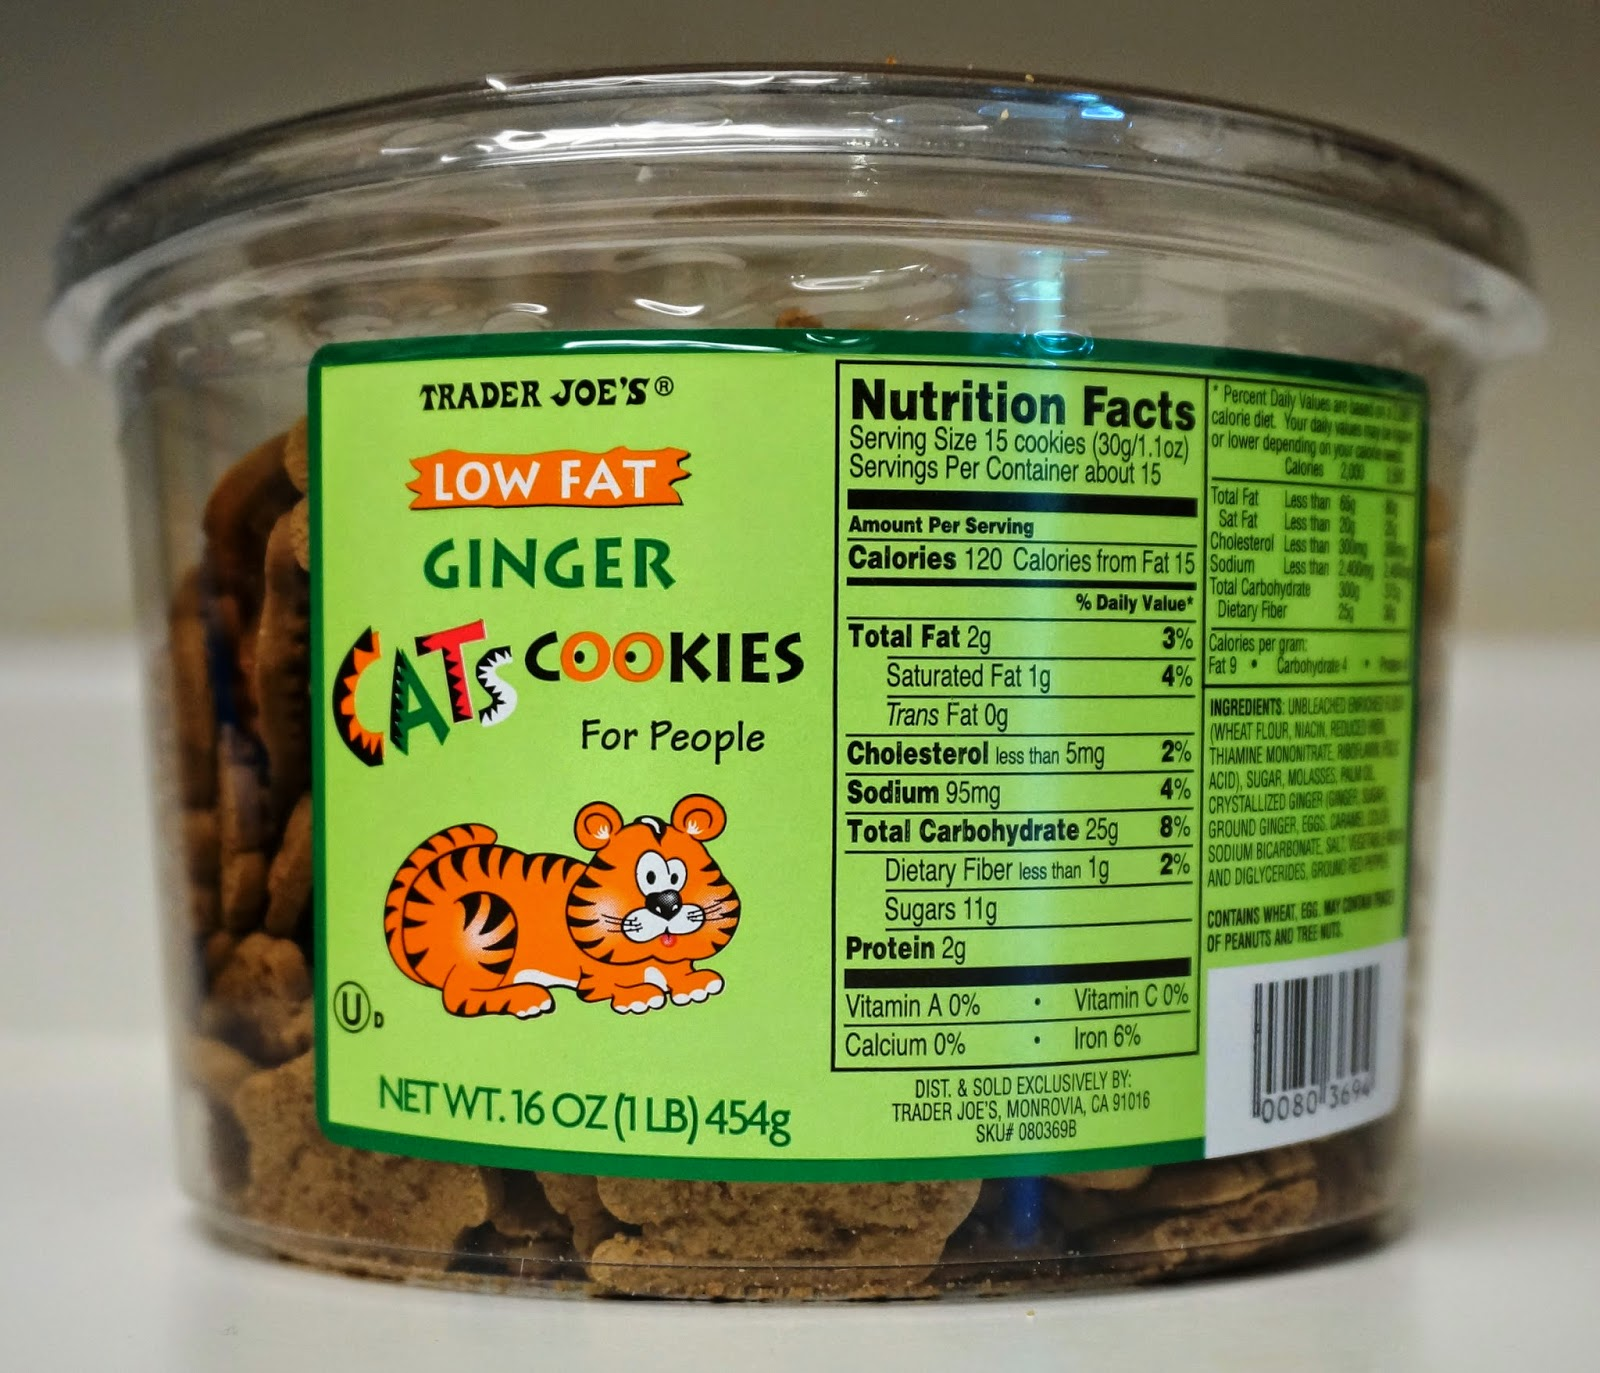 ... Trader Joe's: Trader Joe's Low Fat Ginger Cats Cookies For People